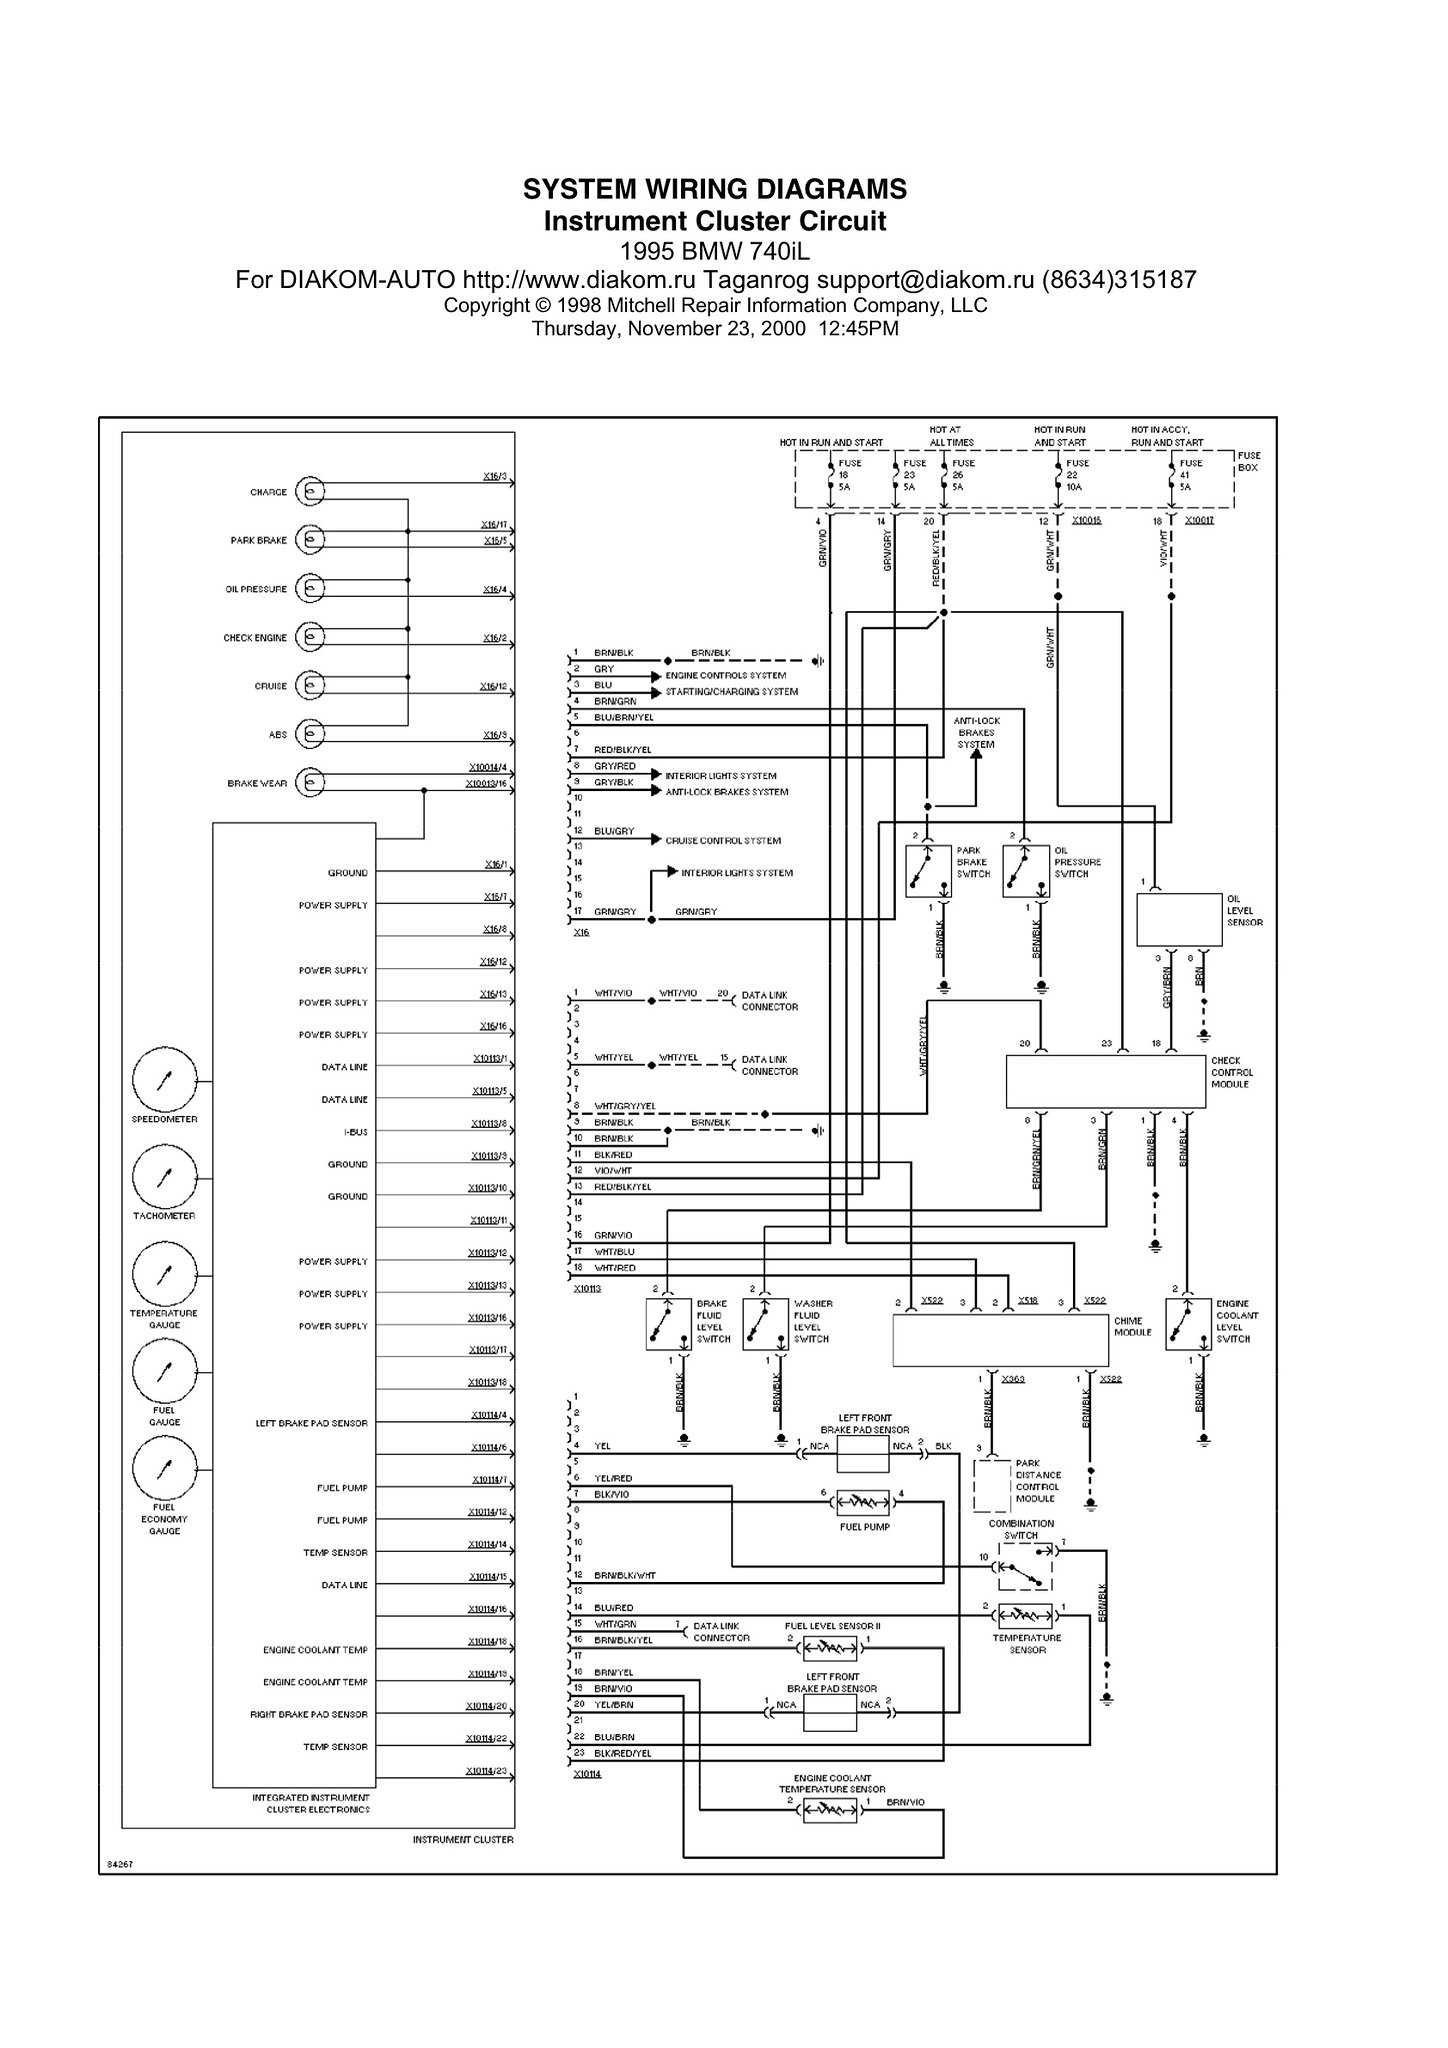 7703585142_dbc4ceb414_k bmw e39 wiring diagrams 1998 740i heated seat wiring diagram e46 engine wiring diagram at panicattacktreatment.co